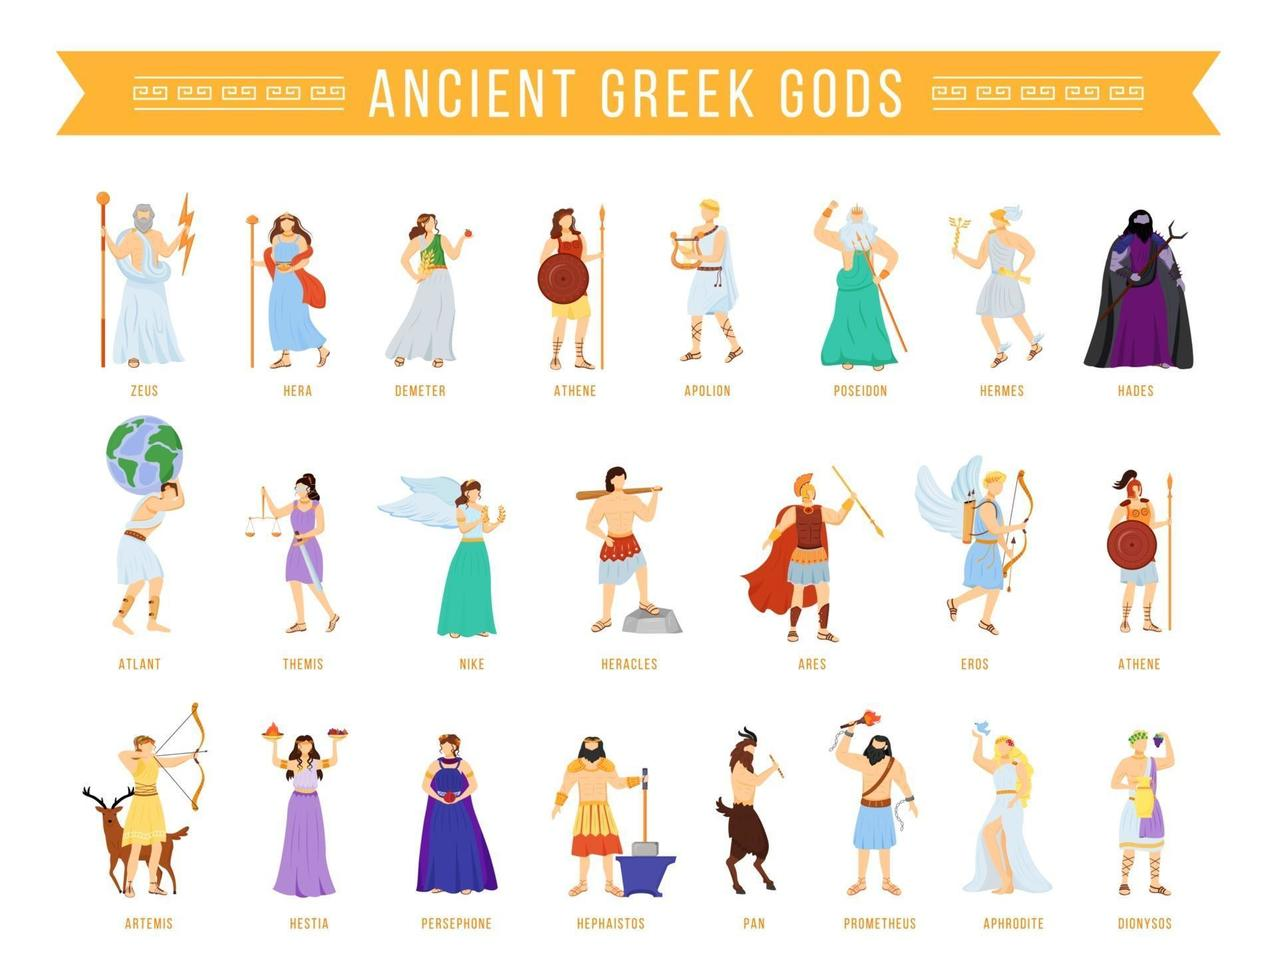 Ancient Greek Pantheon Gods And Goddesses Flat Vector Illustrations Set Titans And Heroes Mythology Olympian Deities Divine Mythological Figures Isolated Cartoon Characters 2778073 Vector Art At Vecteezy